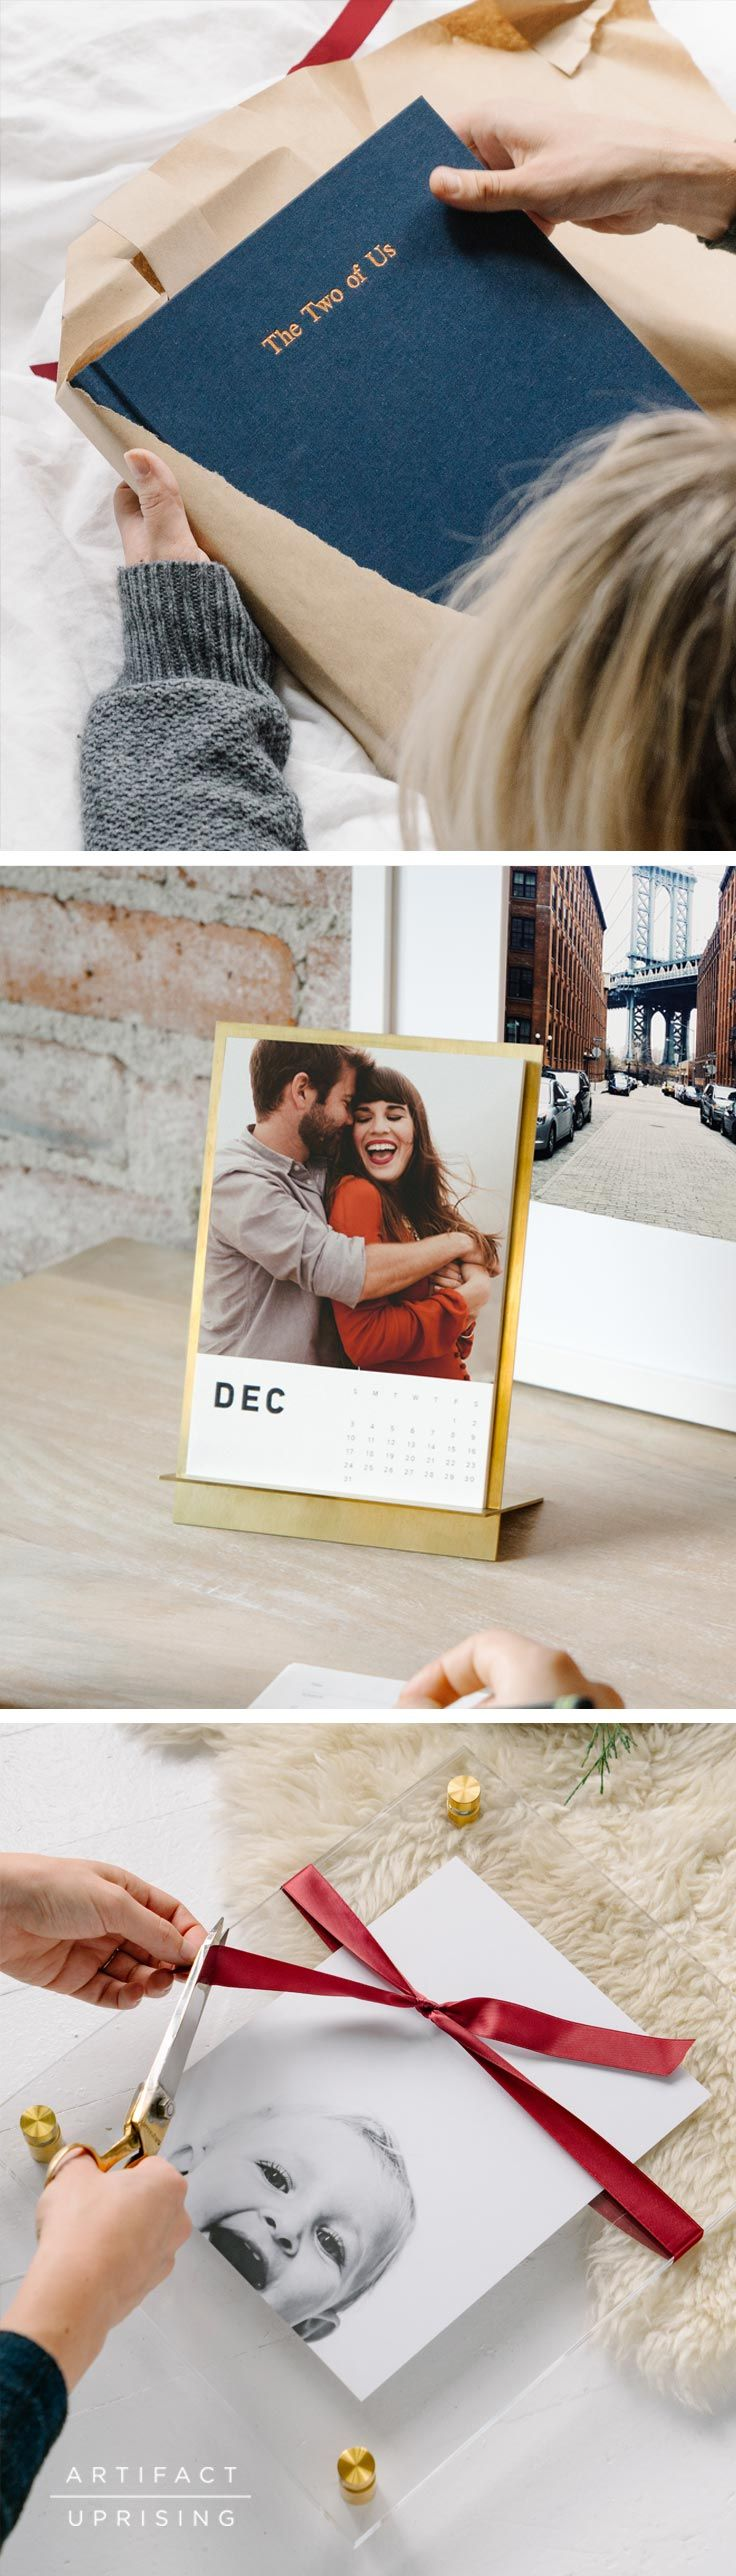 This year, give a one-of-a-kind Christmas gift from @artifactuprsng ...